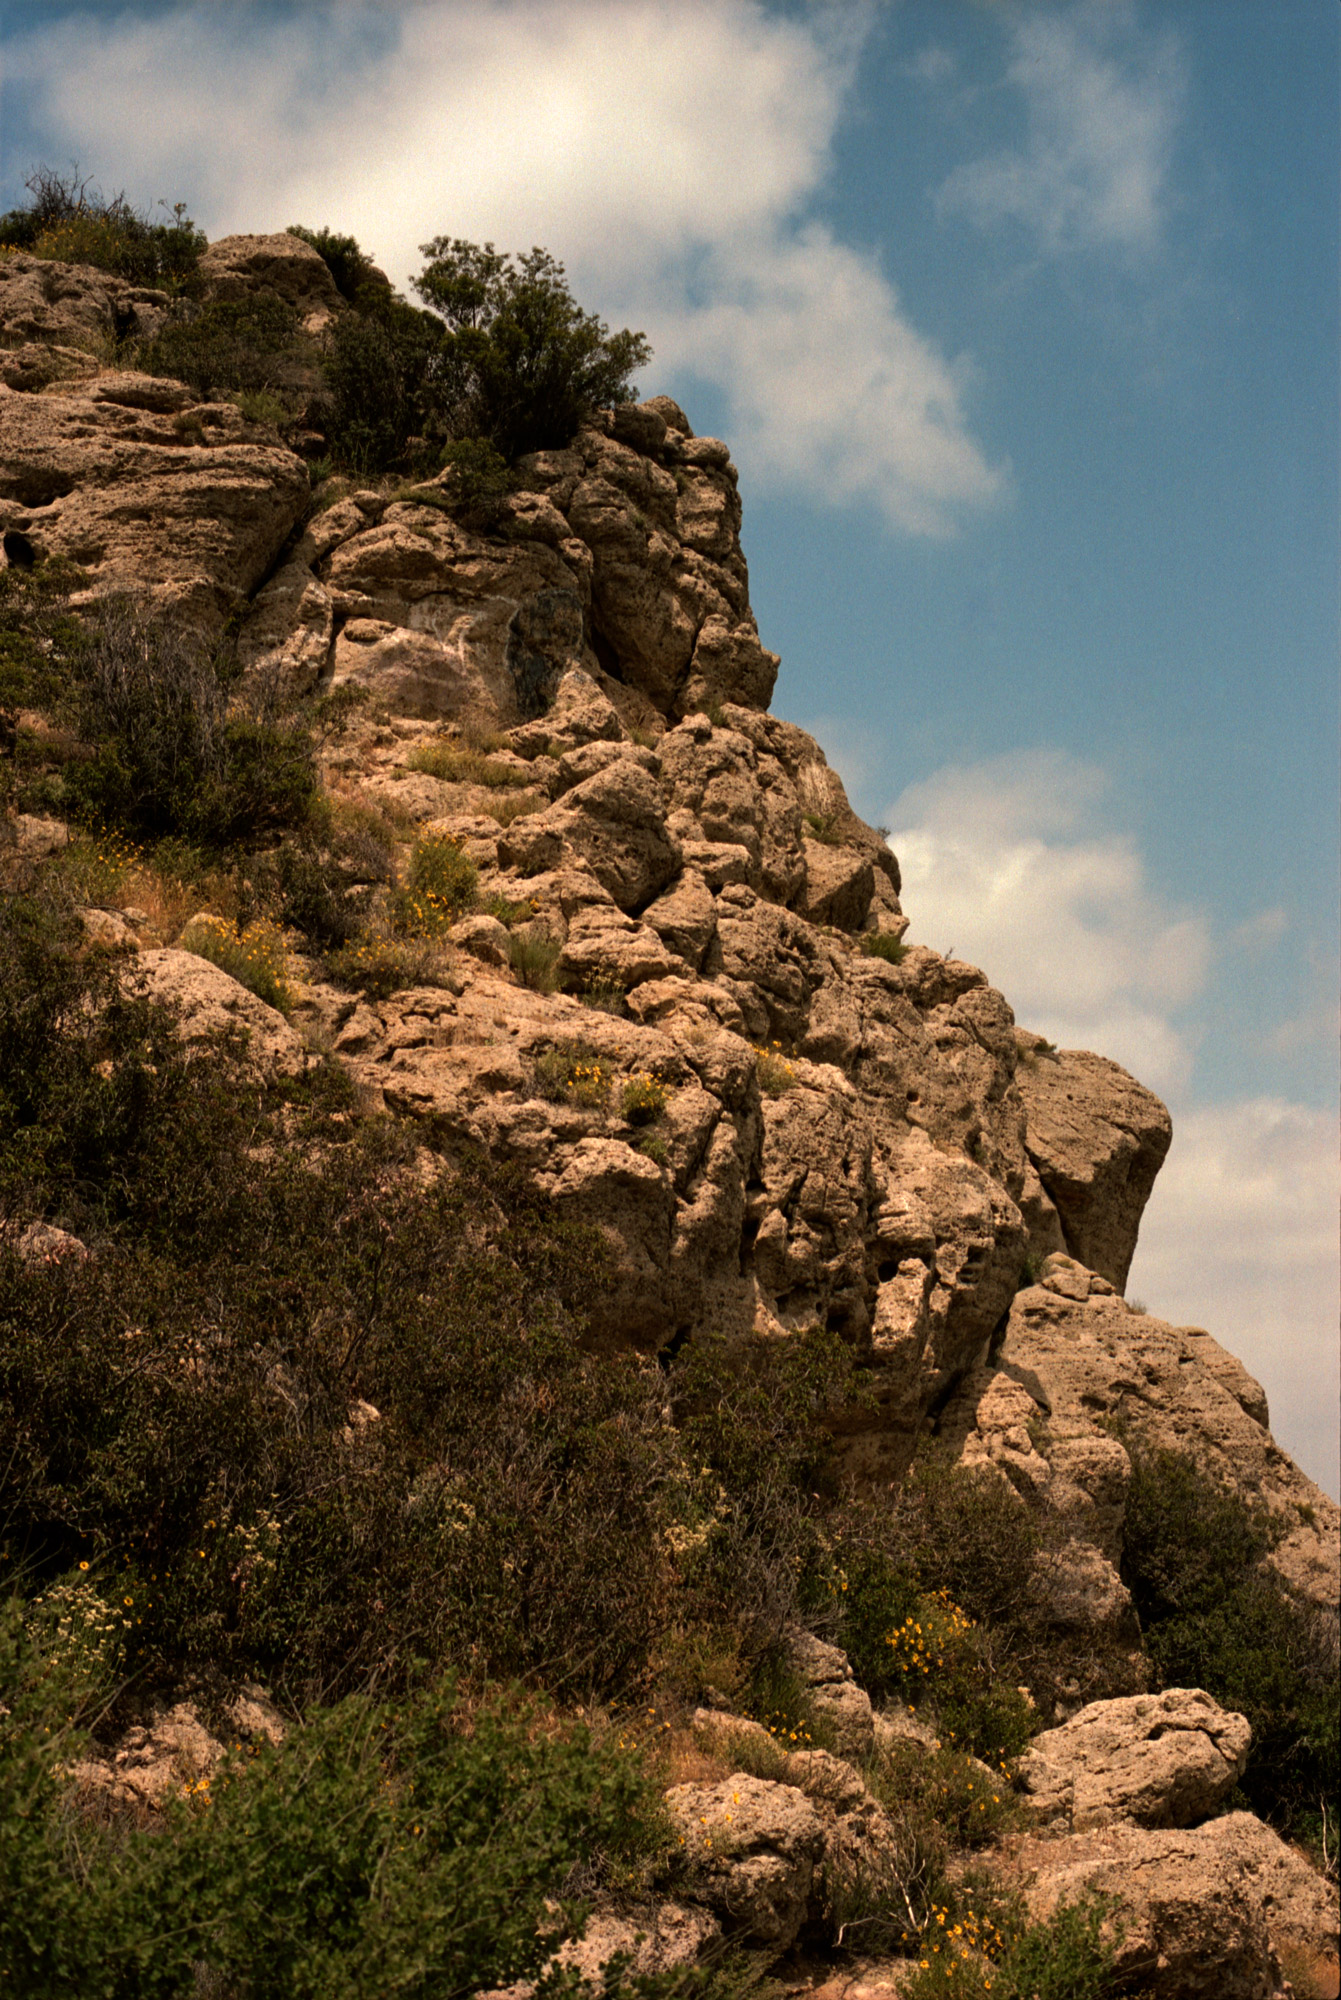 Rock Formations, West Hills, LA, Omg Your English, Photography by Ioannis Koussertari